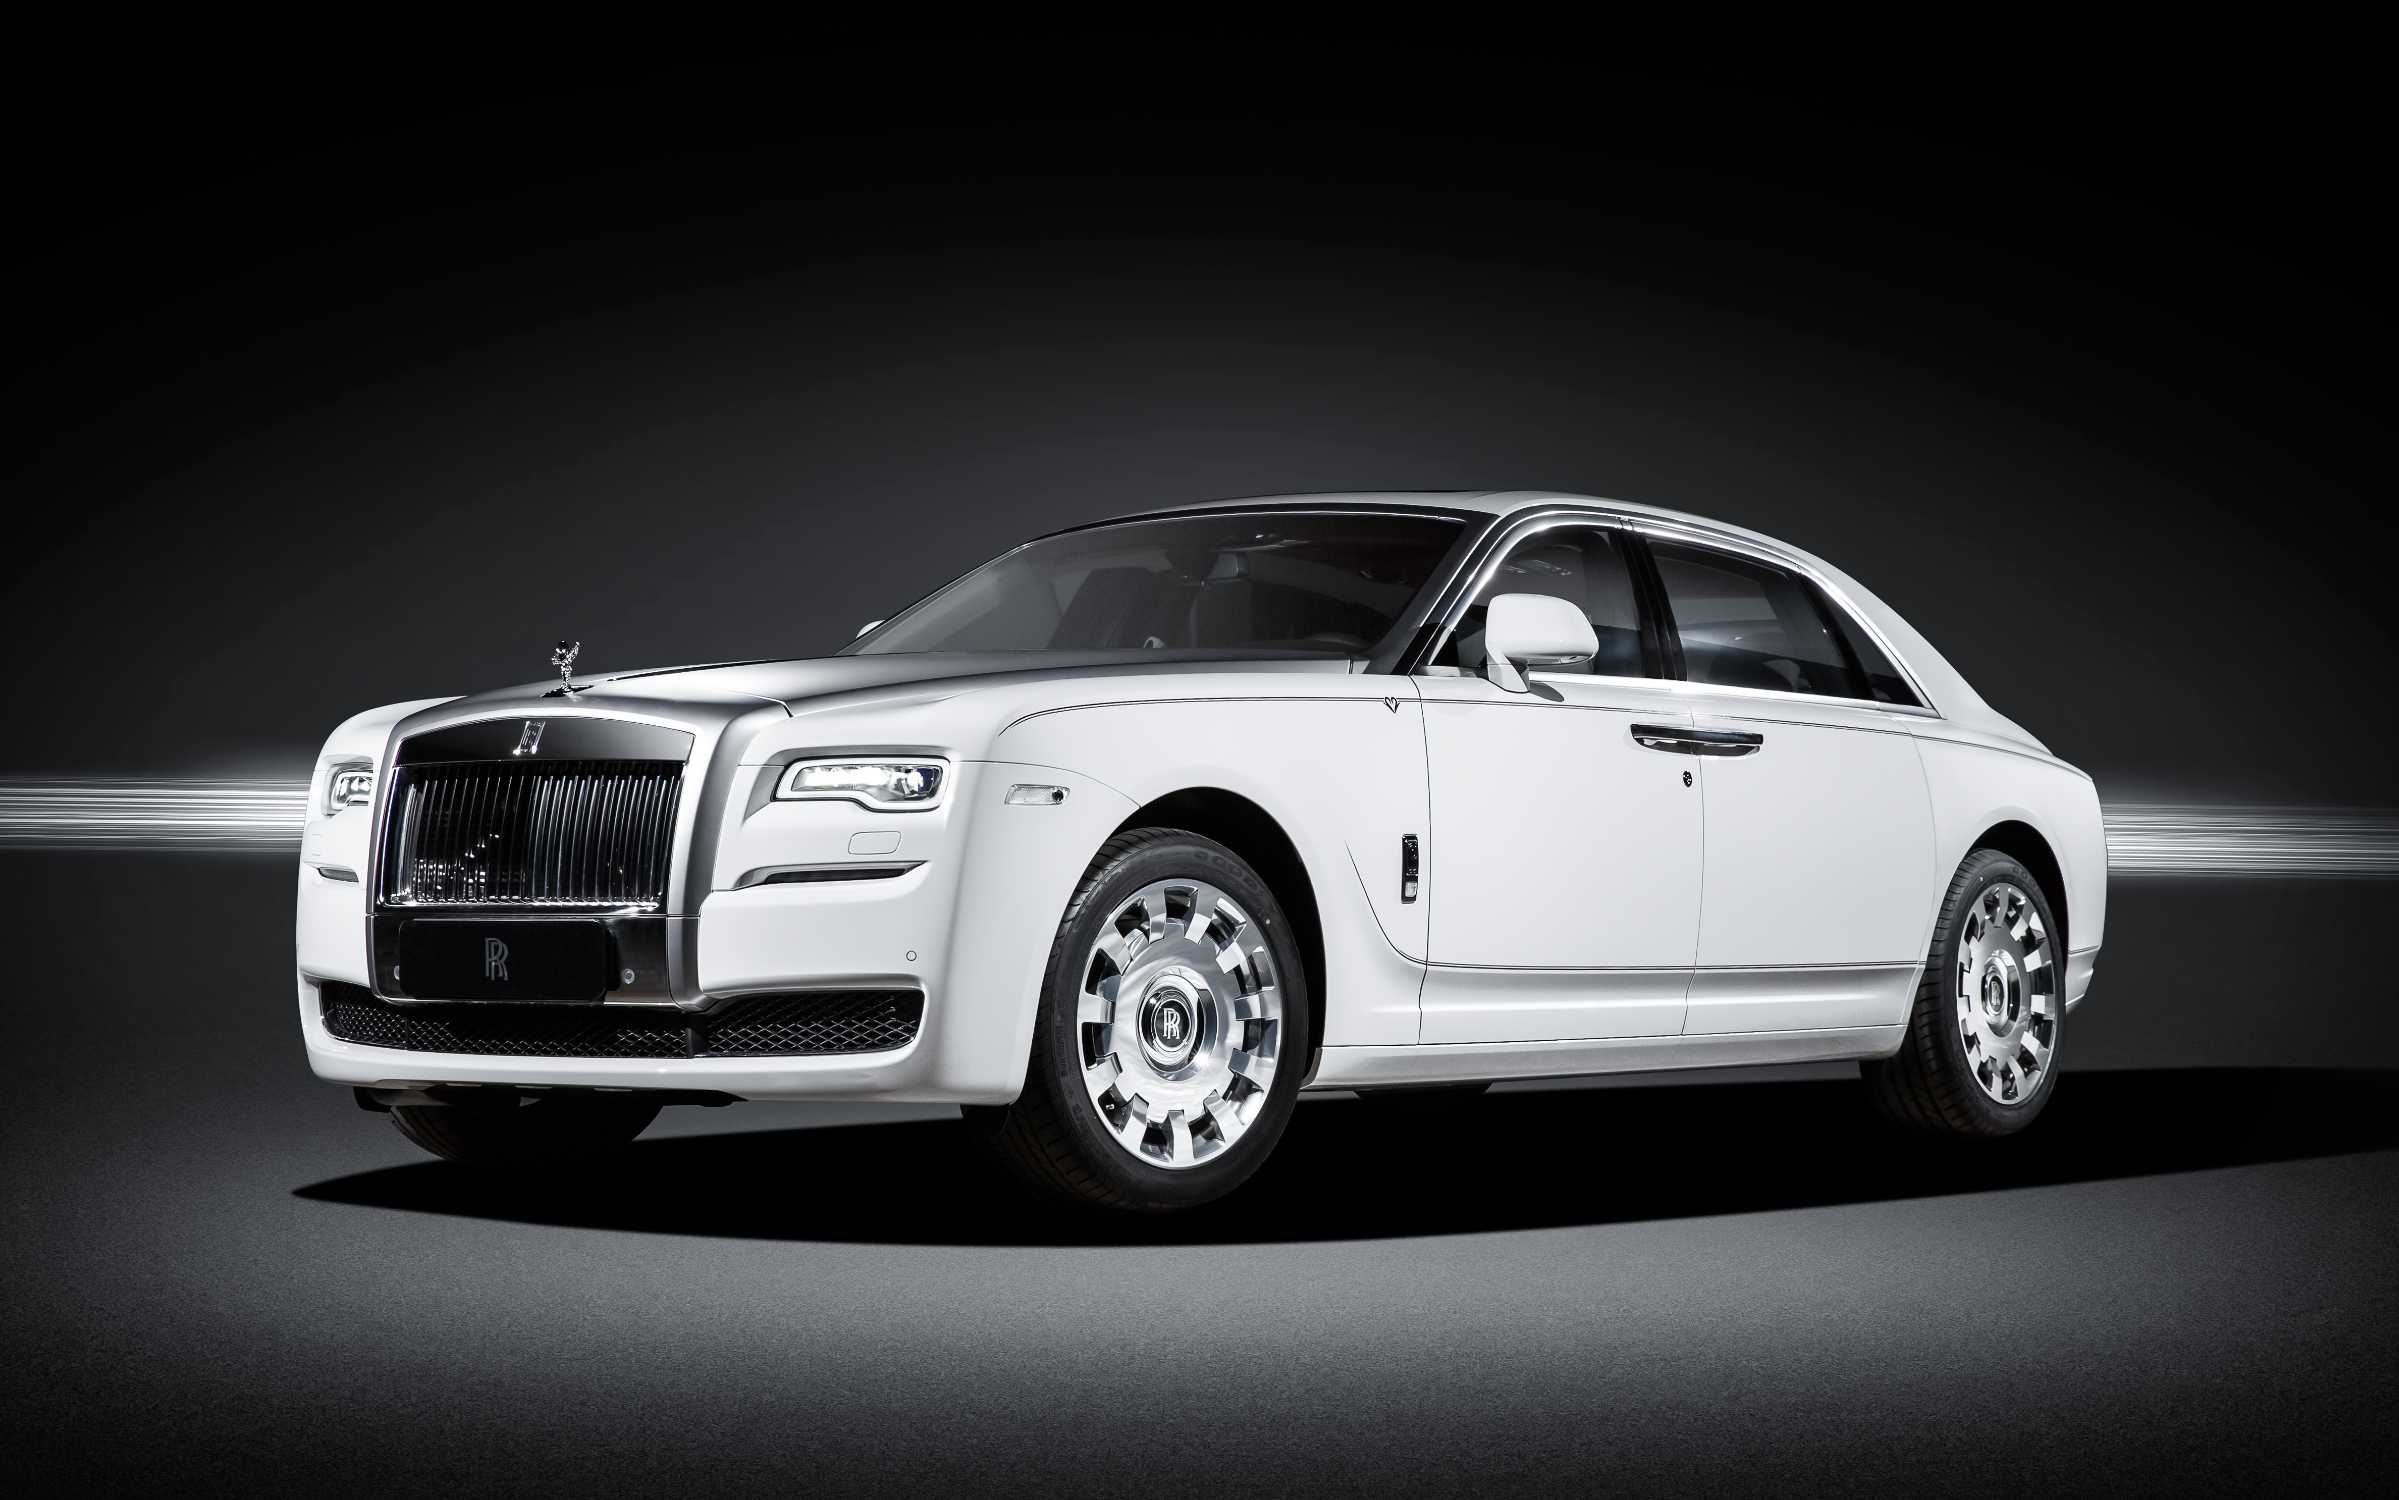 ROLLS-ROYCE MOTOR CARS UNVEILS GHOST 'ETERNAL LOVE' COLLECTION TO CHINA